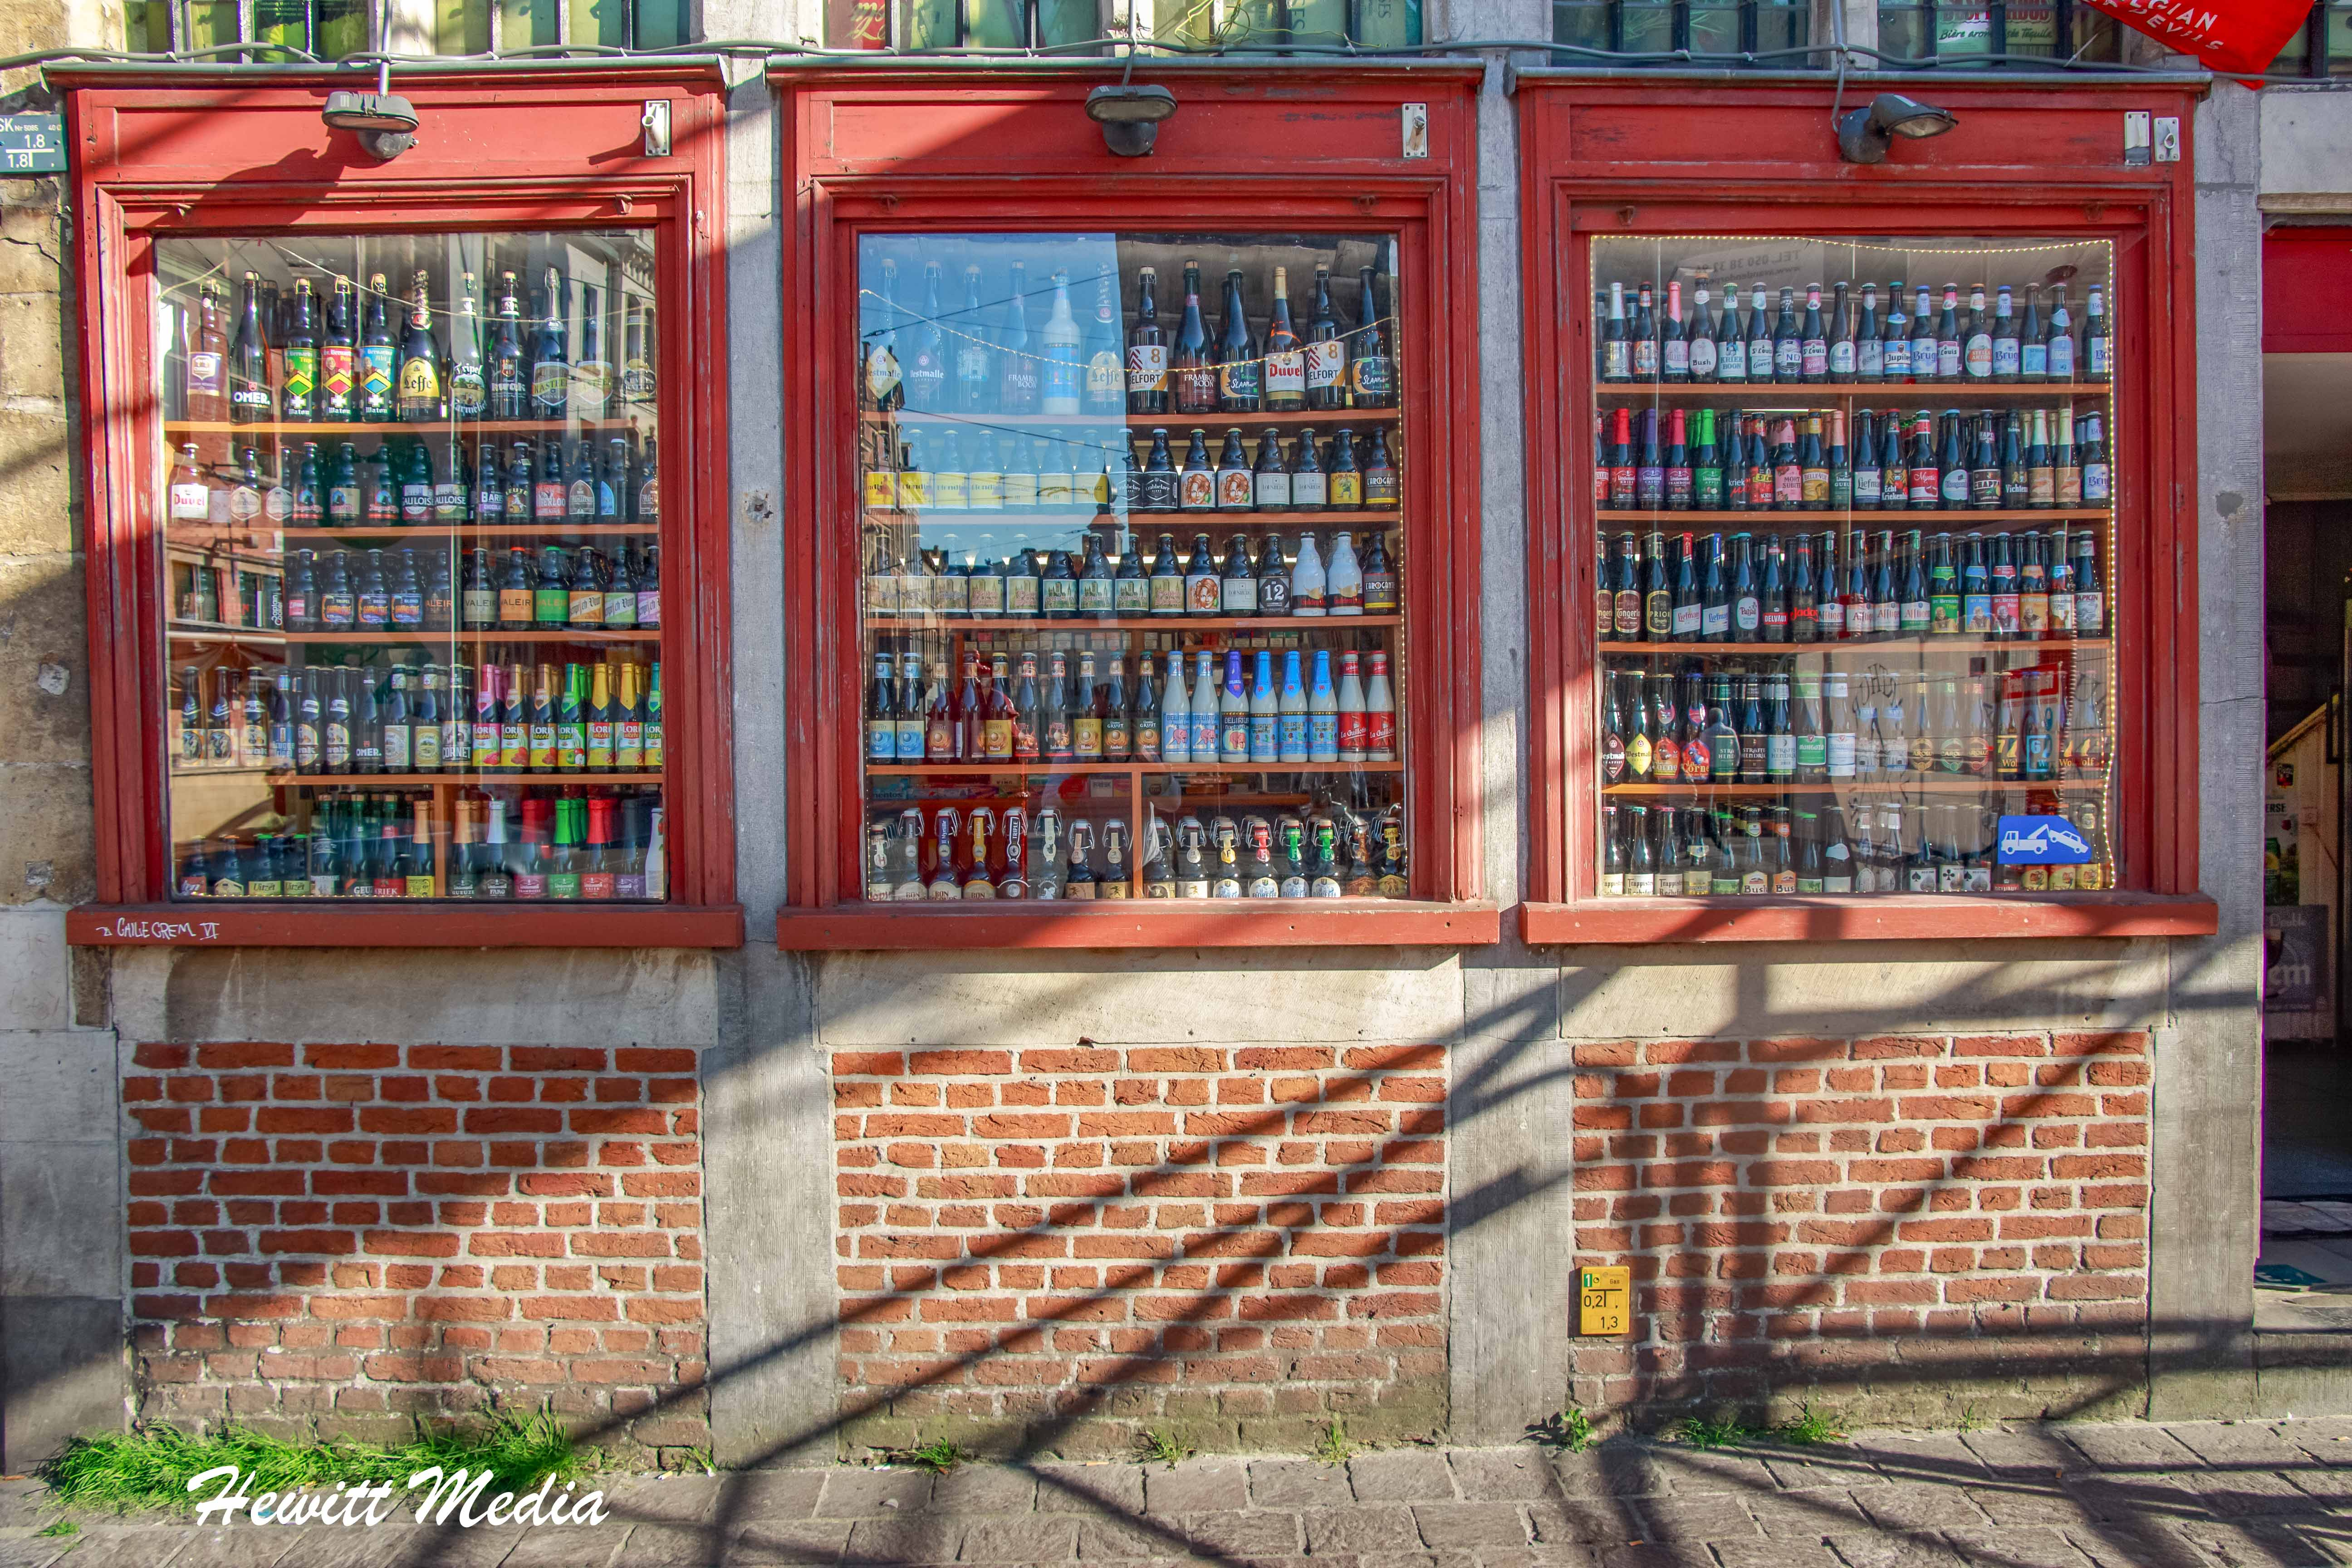 There are over 250 local beers available in Ghent